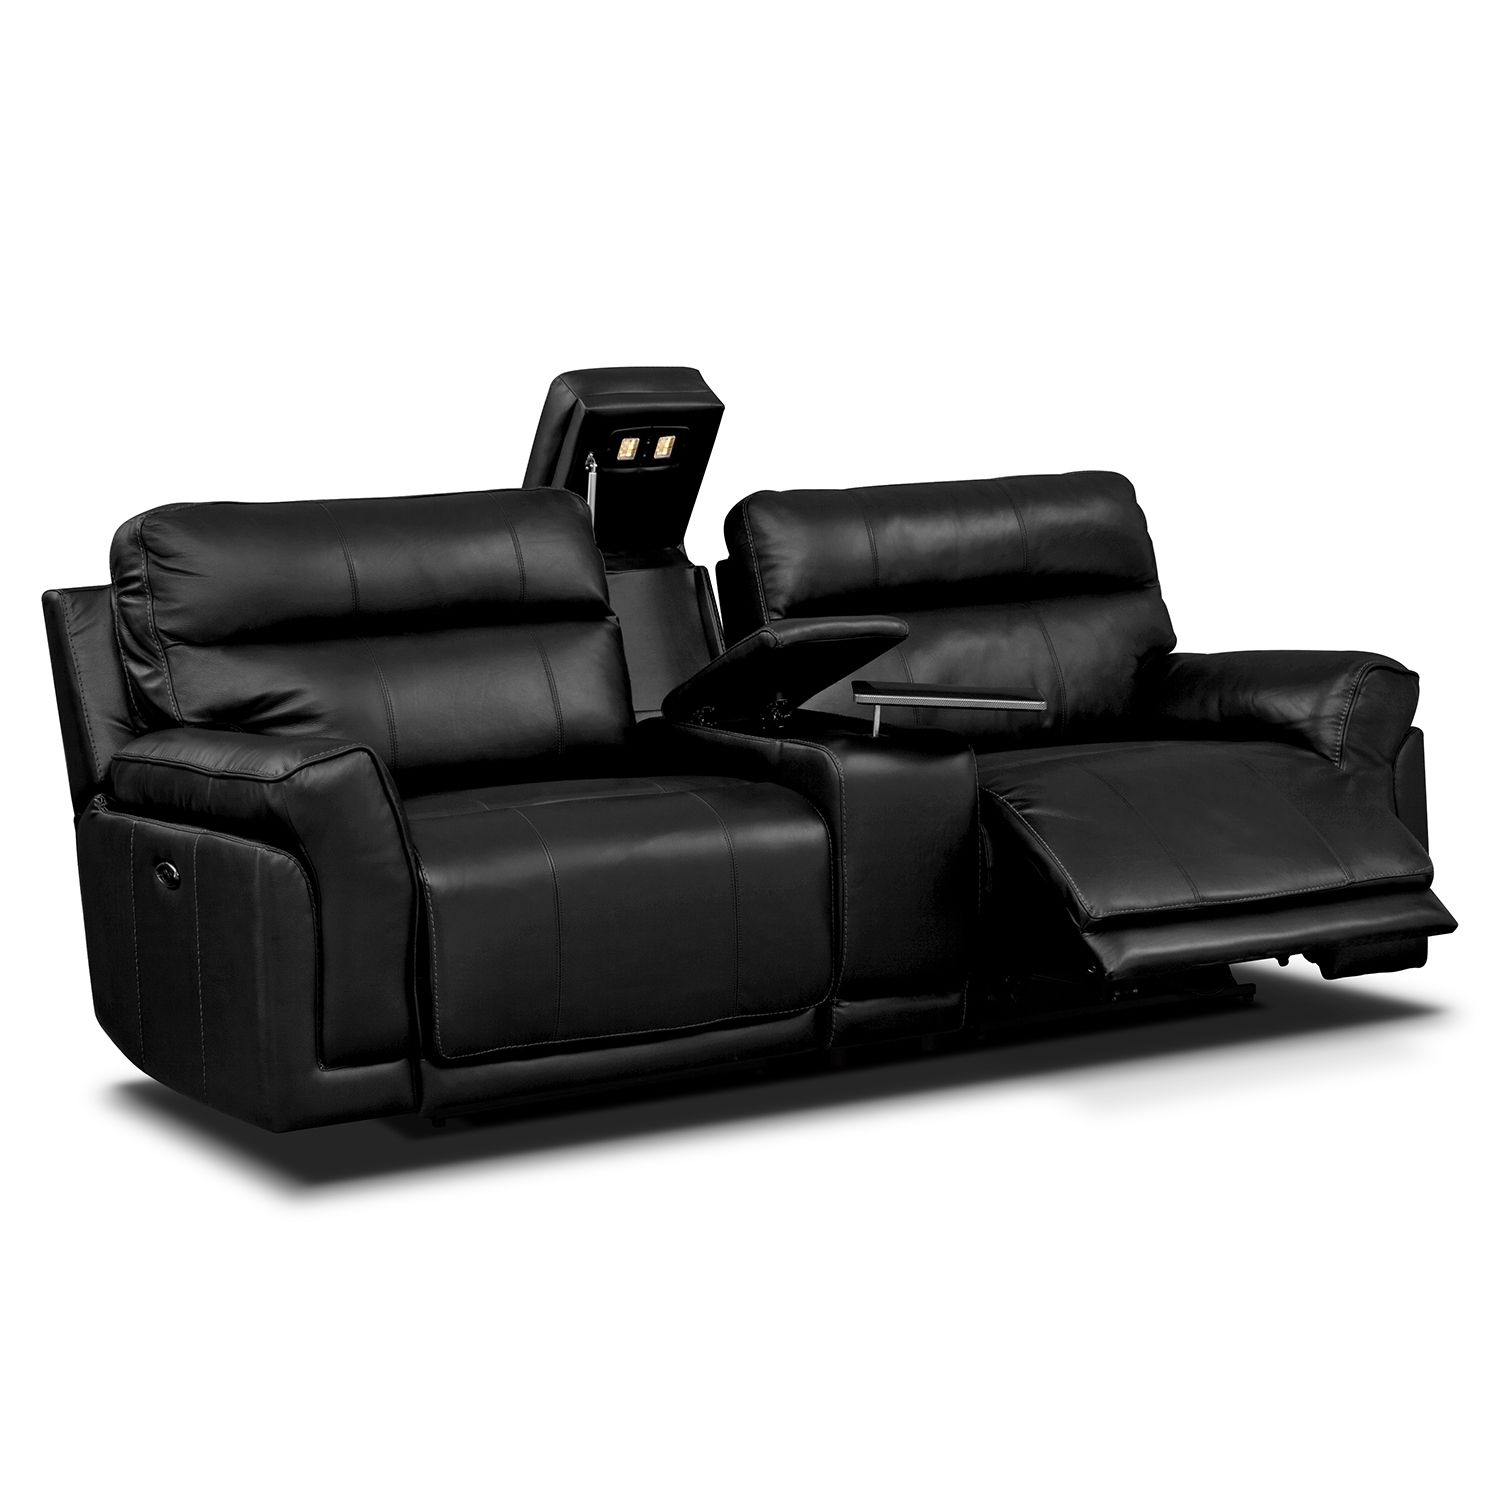 Voyager 3 Pc Power Reclining Sofa with Console